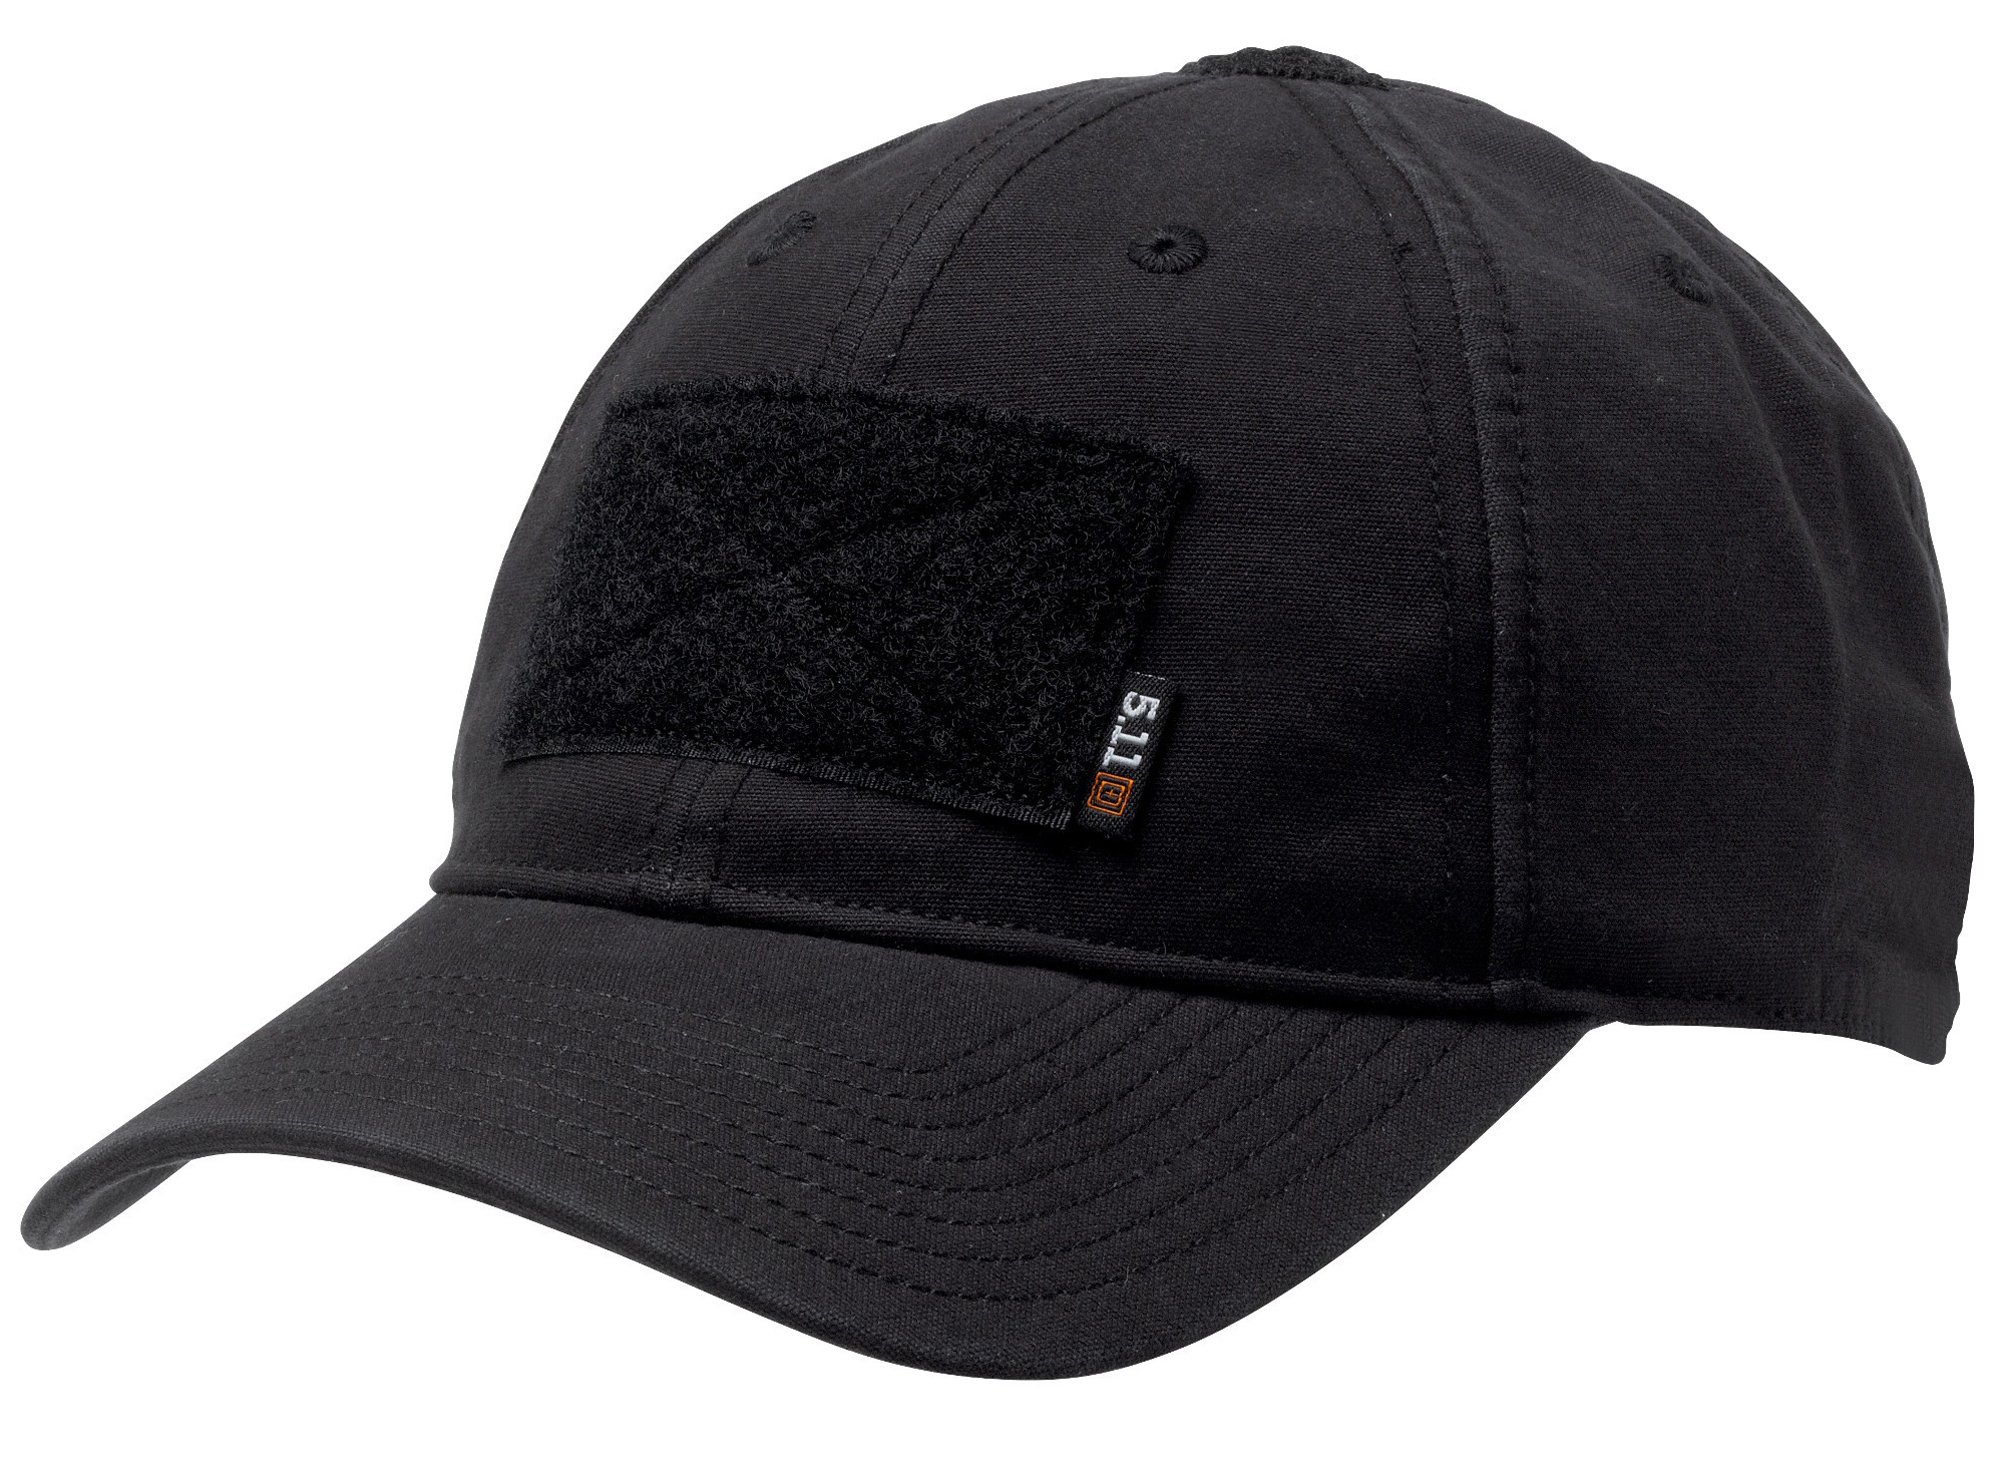 5.11 Tactical Flag Bearer Cap, Black, One Size